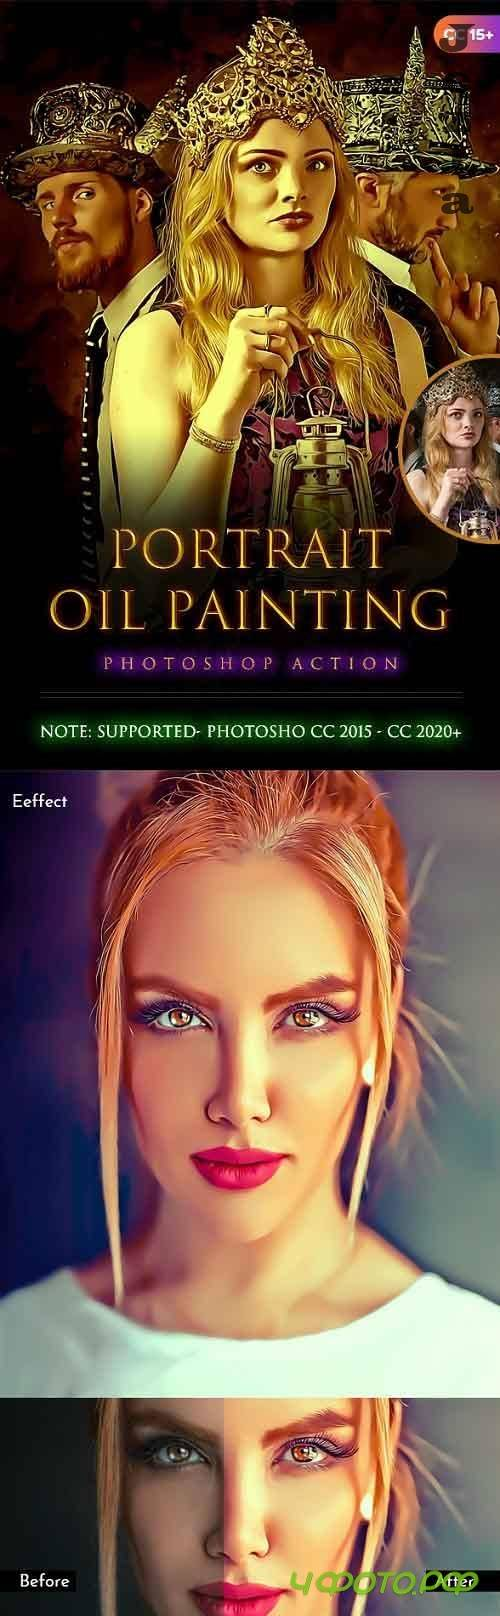 Portrait Oil Painting Action 28368558